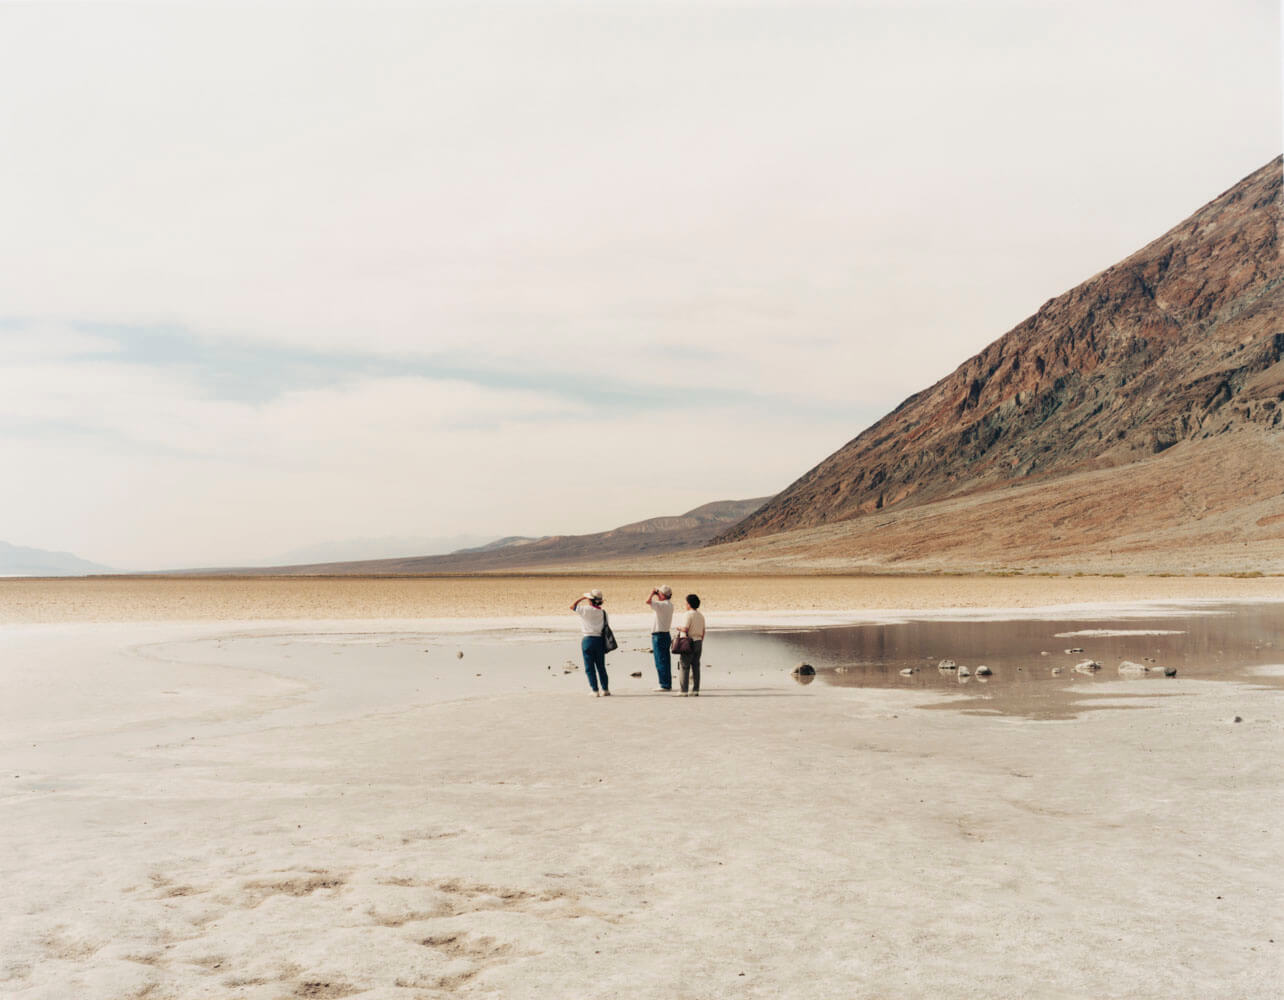 Tourists-II-Death-Valley-1996